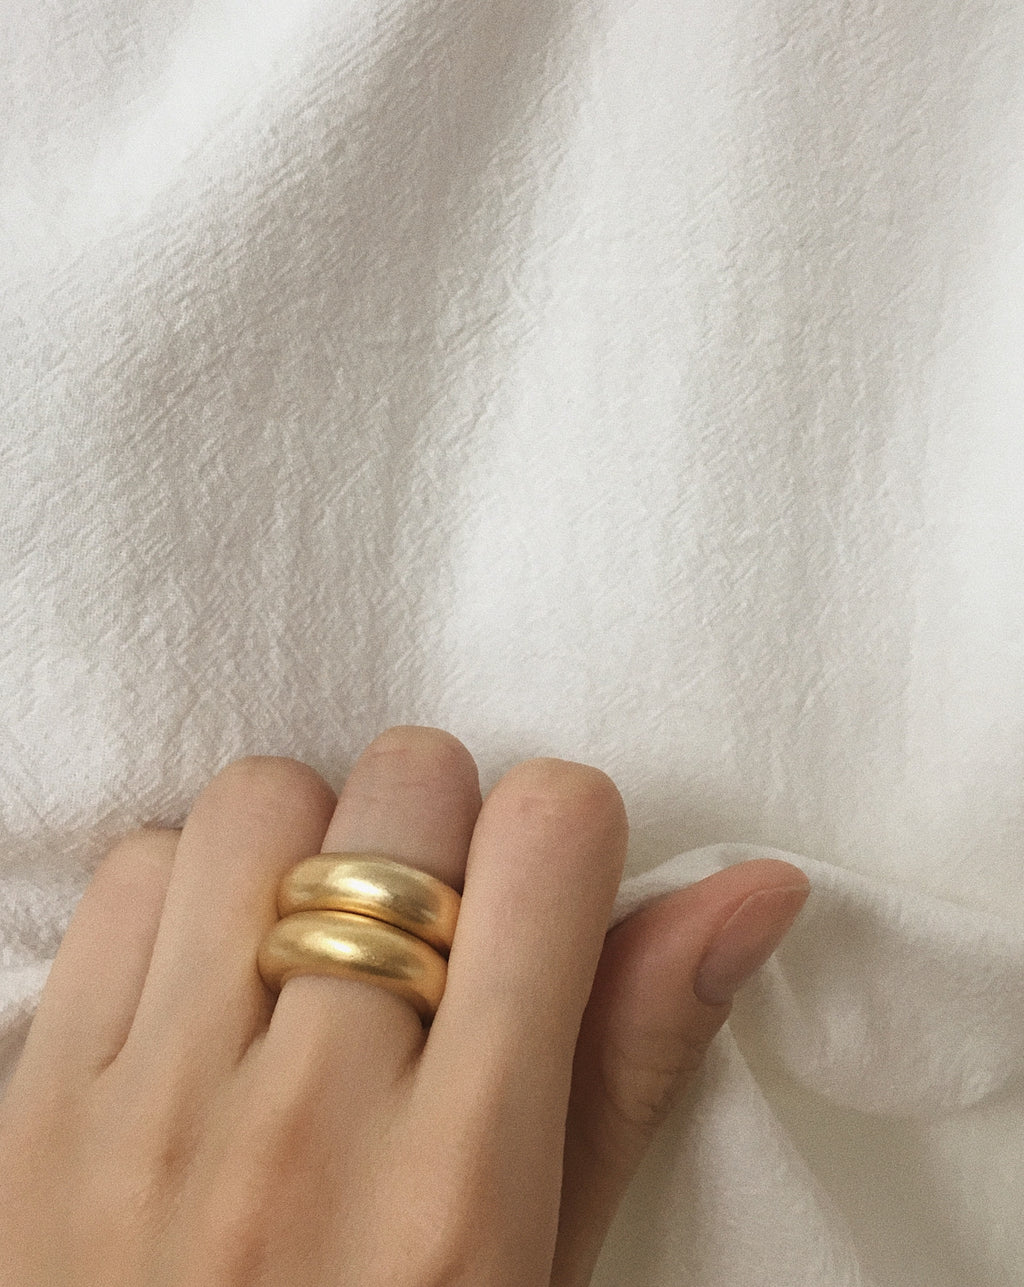 Chunky matte finish gold rings stacked together - The Hexad